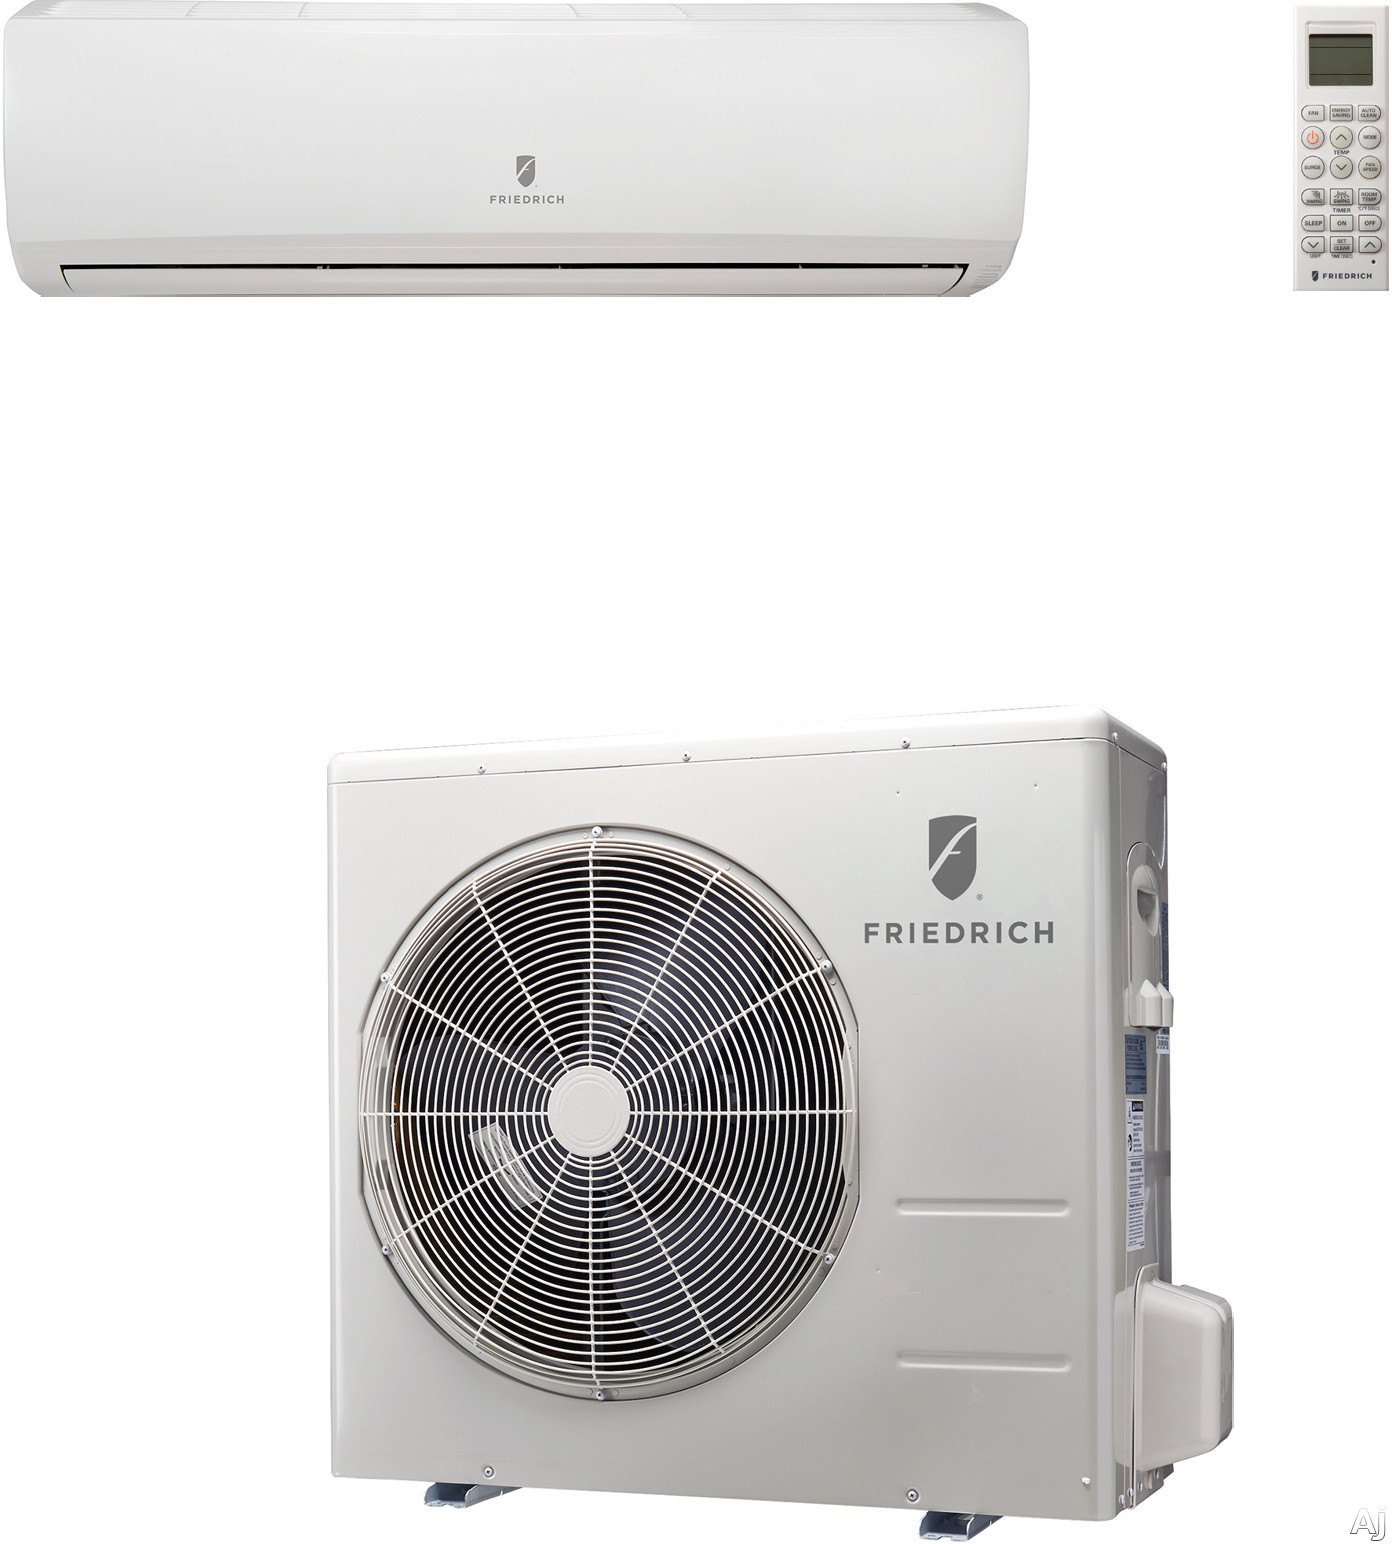 Friedrich M36YJ 33,000 BTU Single Zone Wall-Mount Ductless Split System with 35,200 BTU Heat Pump, 8.2 EER, 16.5 SEER and R410A Refrigerant (MW36Y3J Indoor/MR36Y3J Outdoor) M36YJ